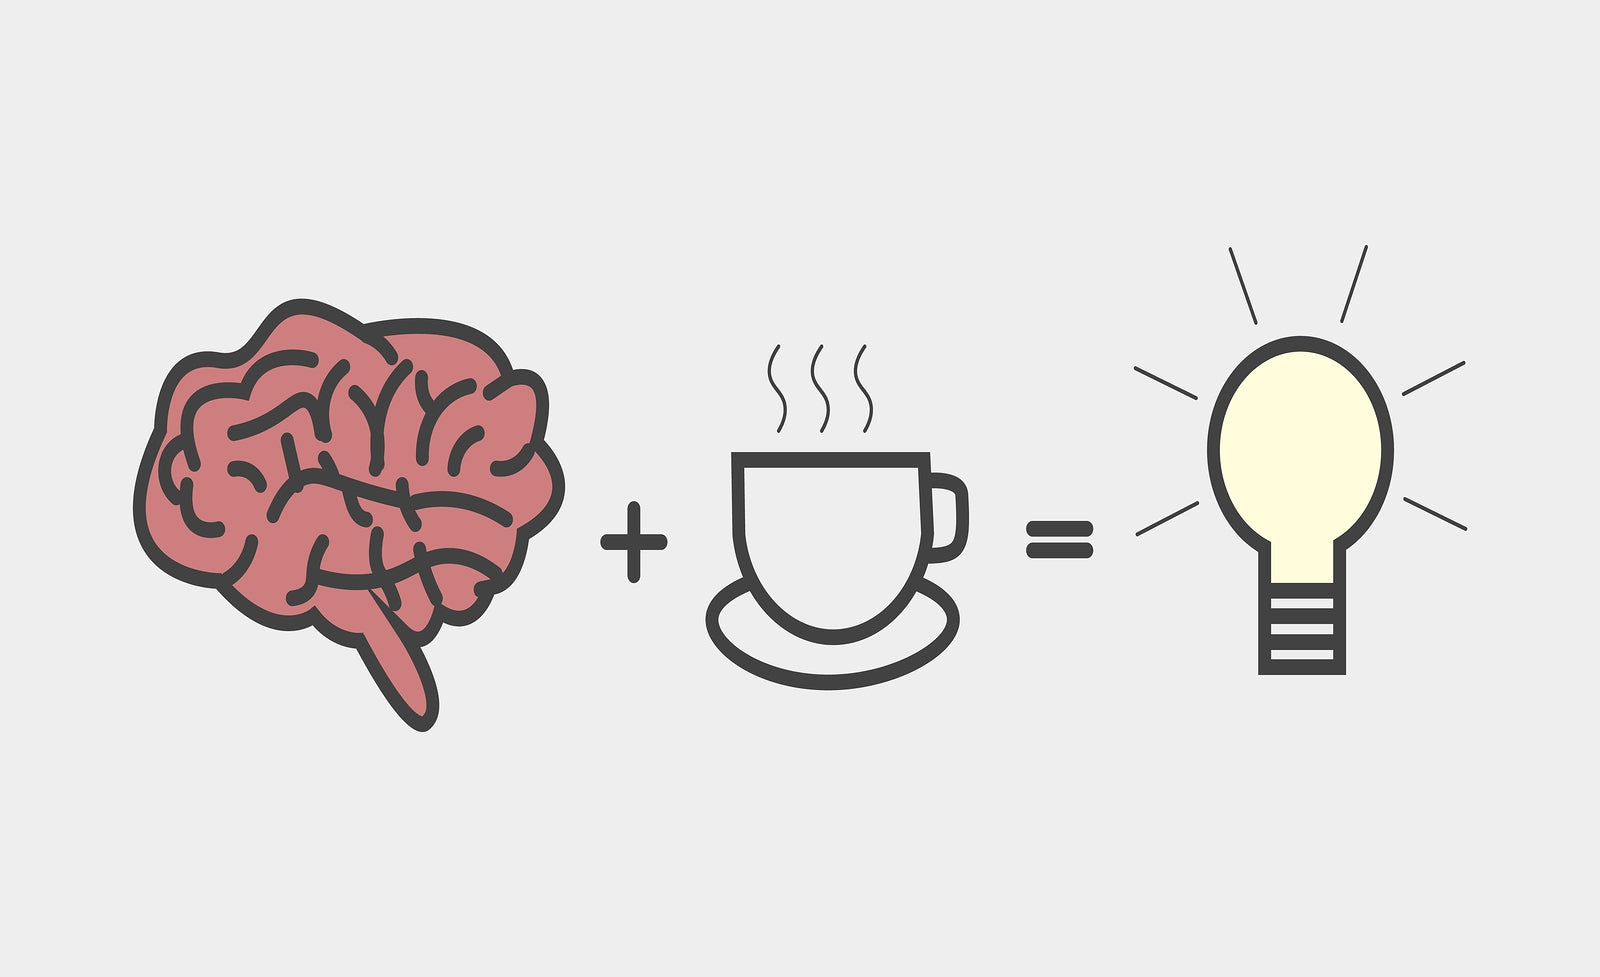 an image showing a brain and cup of coffee next to a light switch